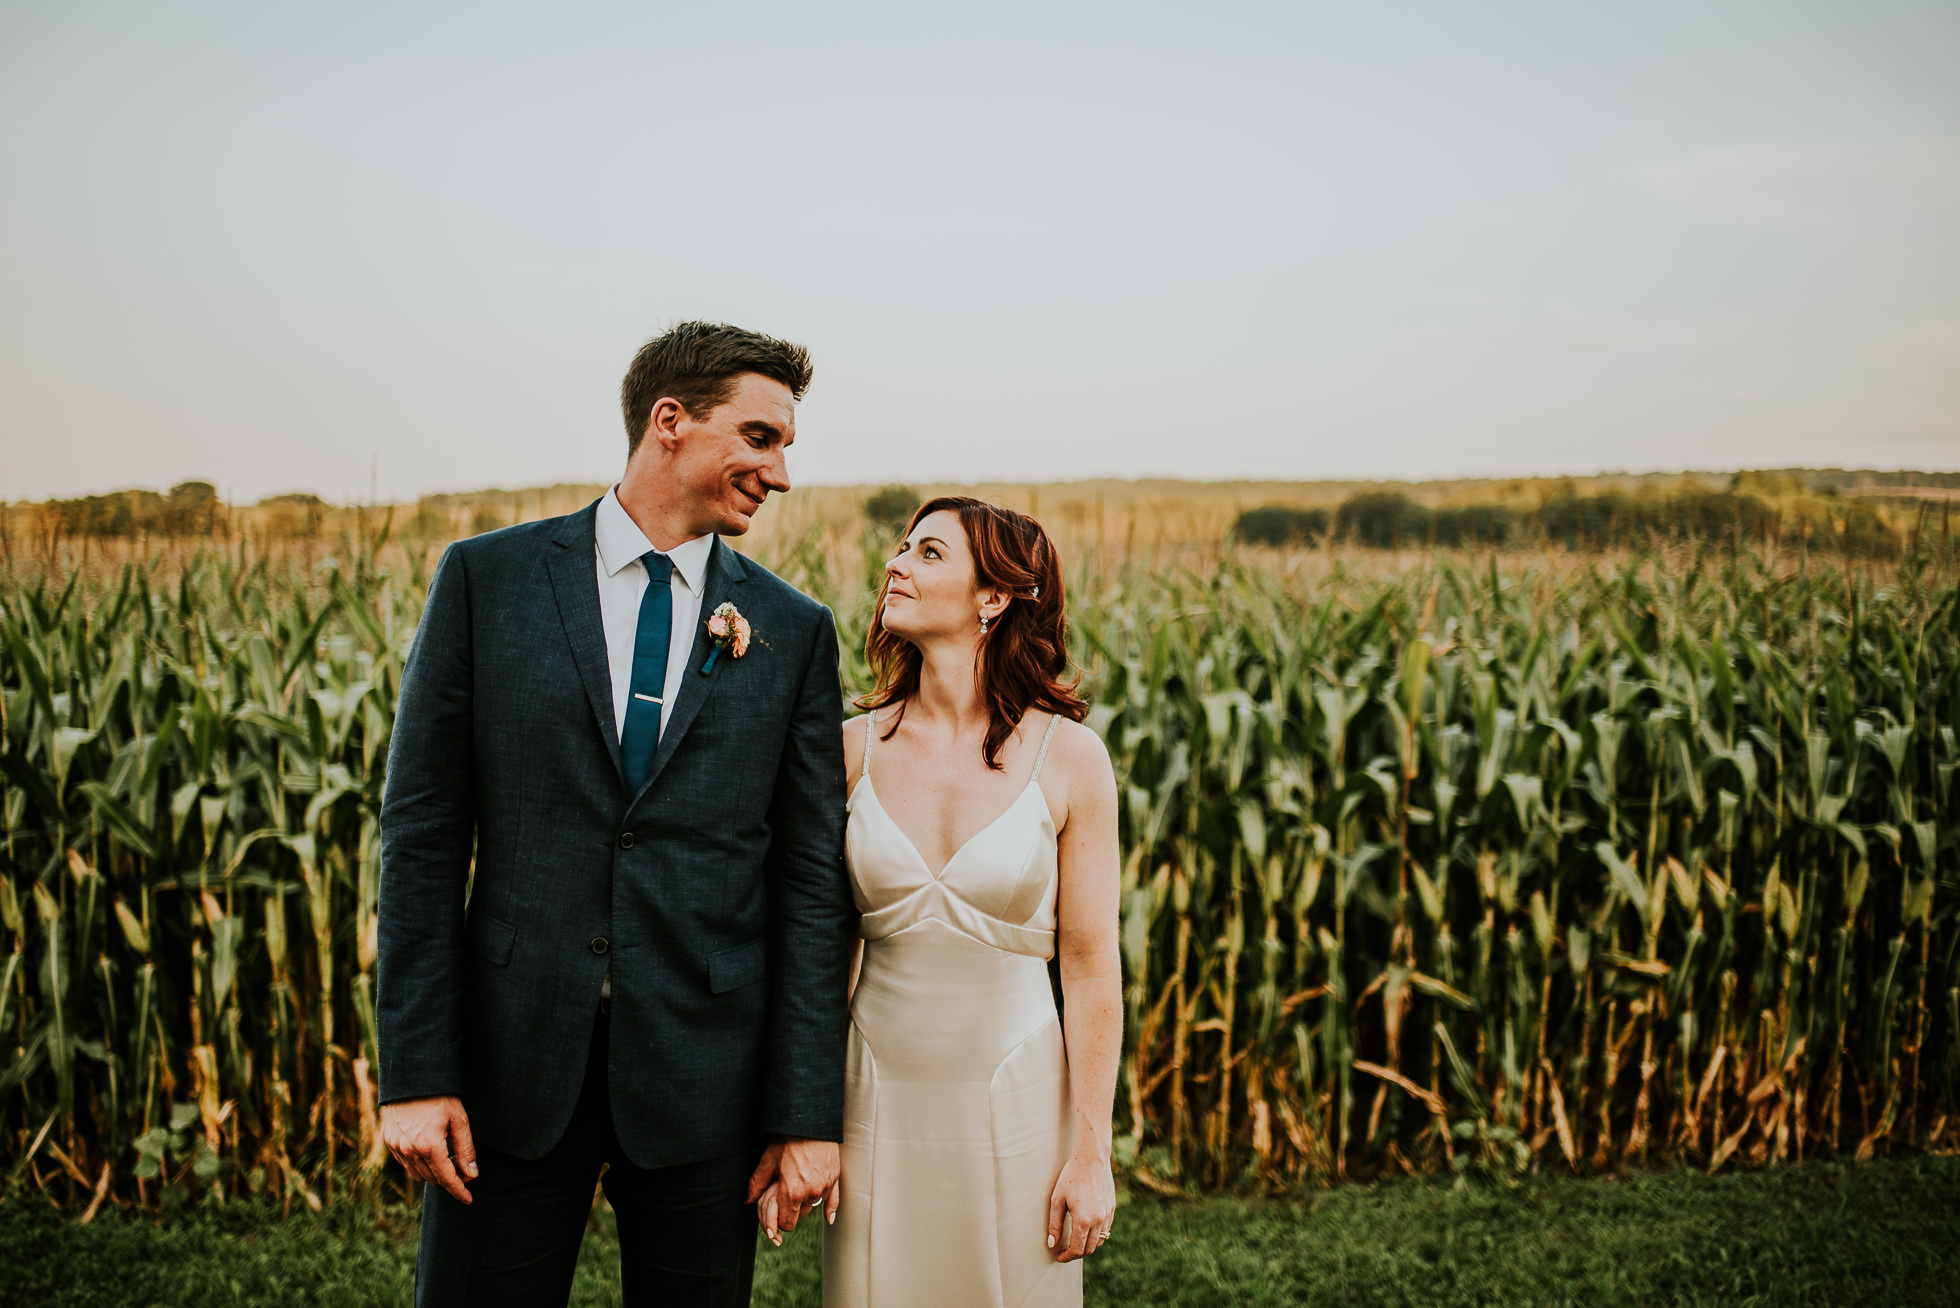 bride and groom looking at each other near corn field at olde tater barn wedding in central bridge, ny photographed by traverse the tides